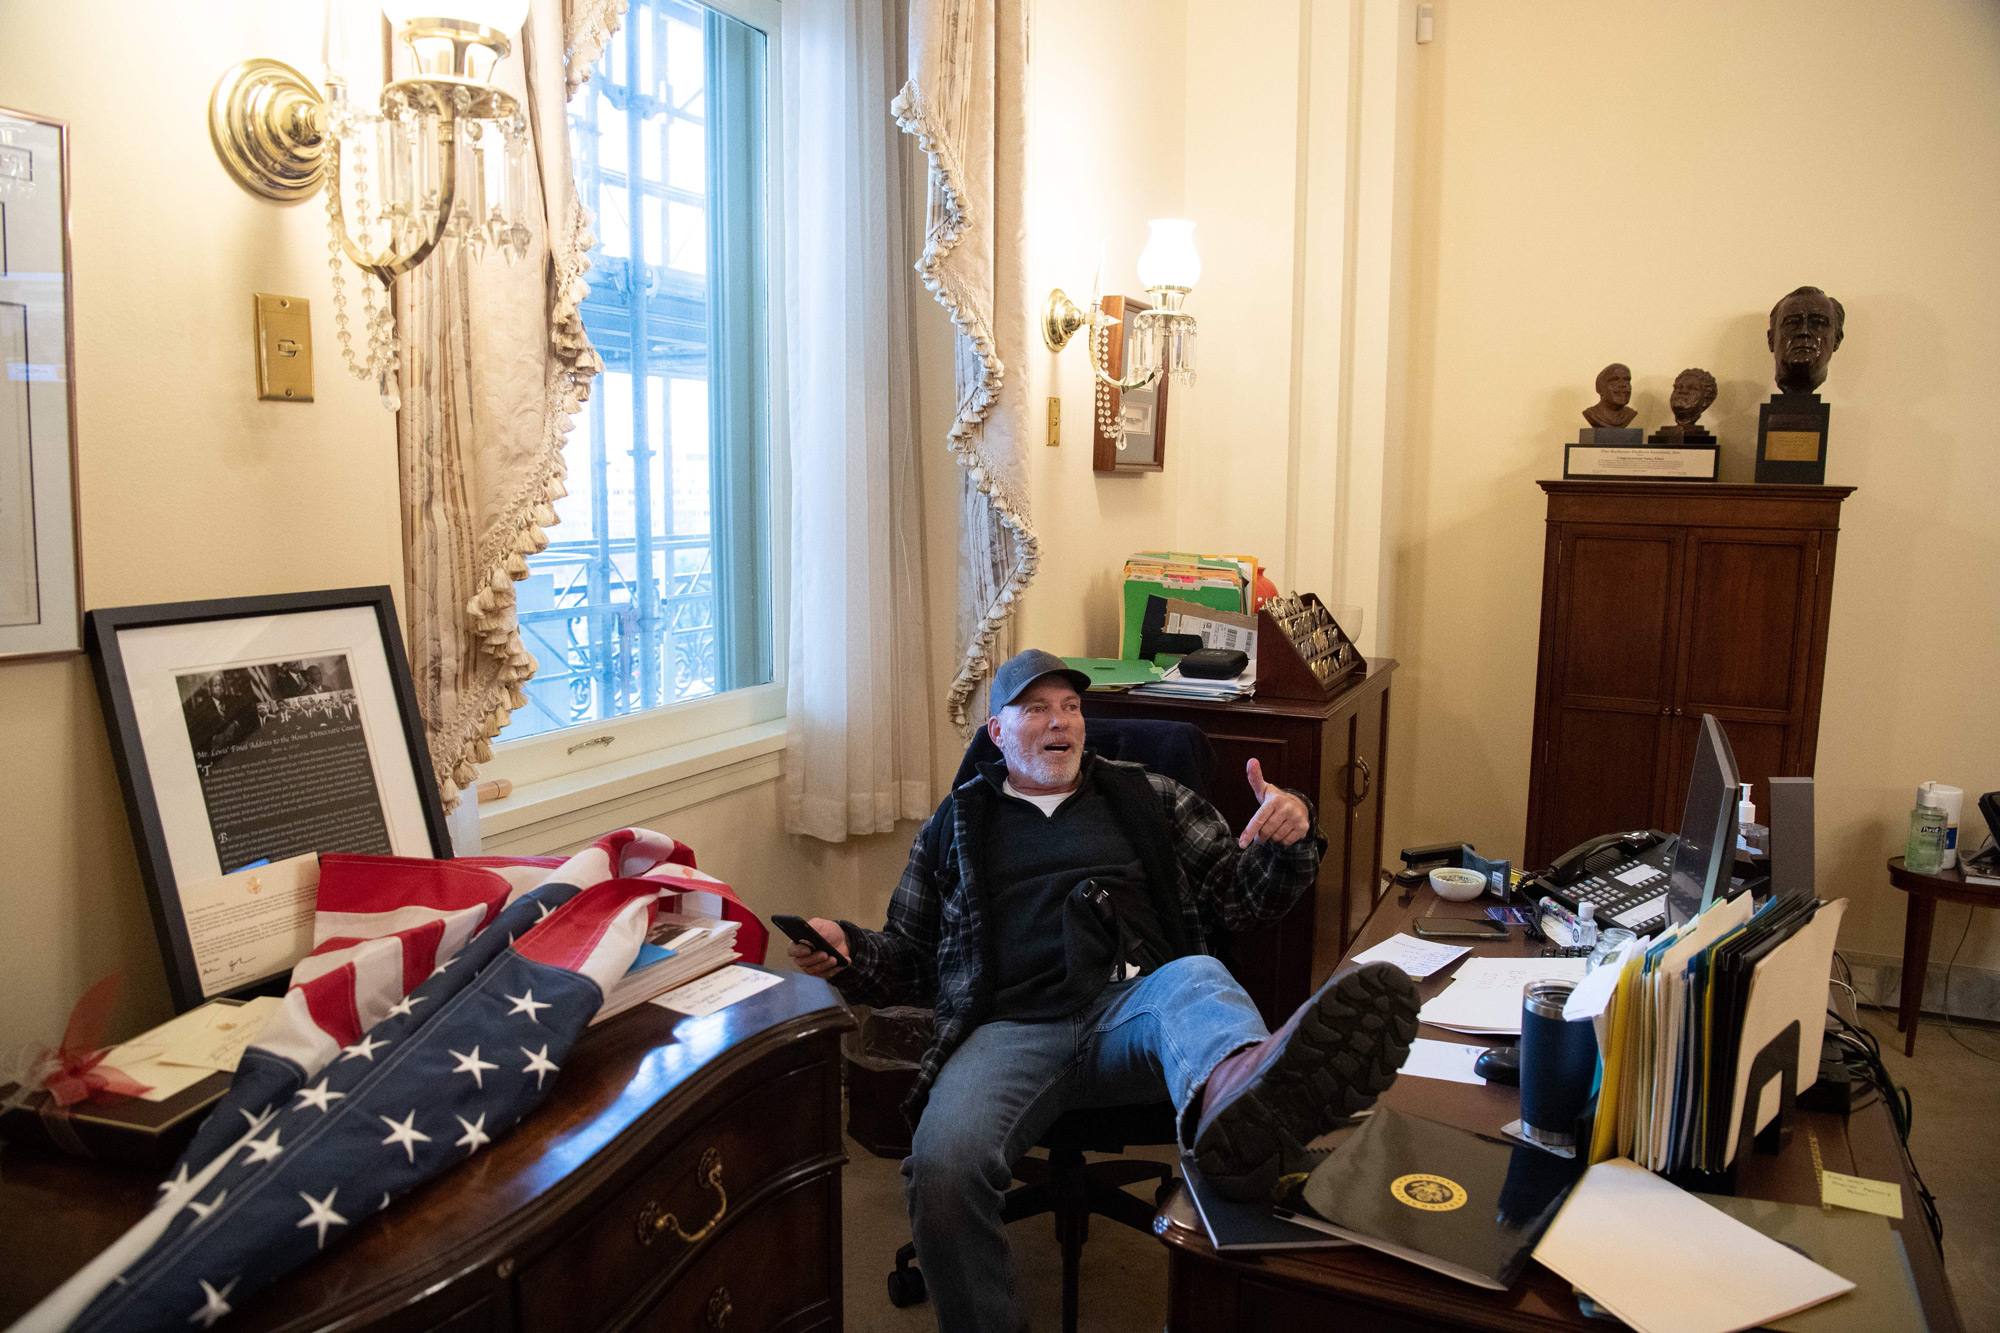 A Trump supporter sits inside the office of House Speaker Nancy Pelosi after breaching the Capitol in Washington, DC, on January 6.